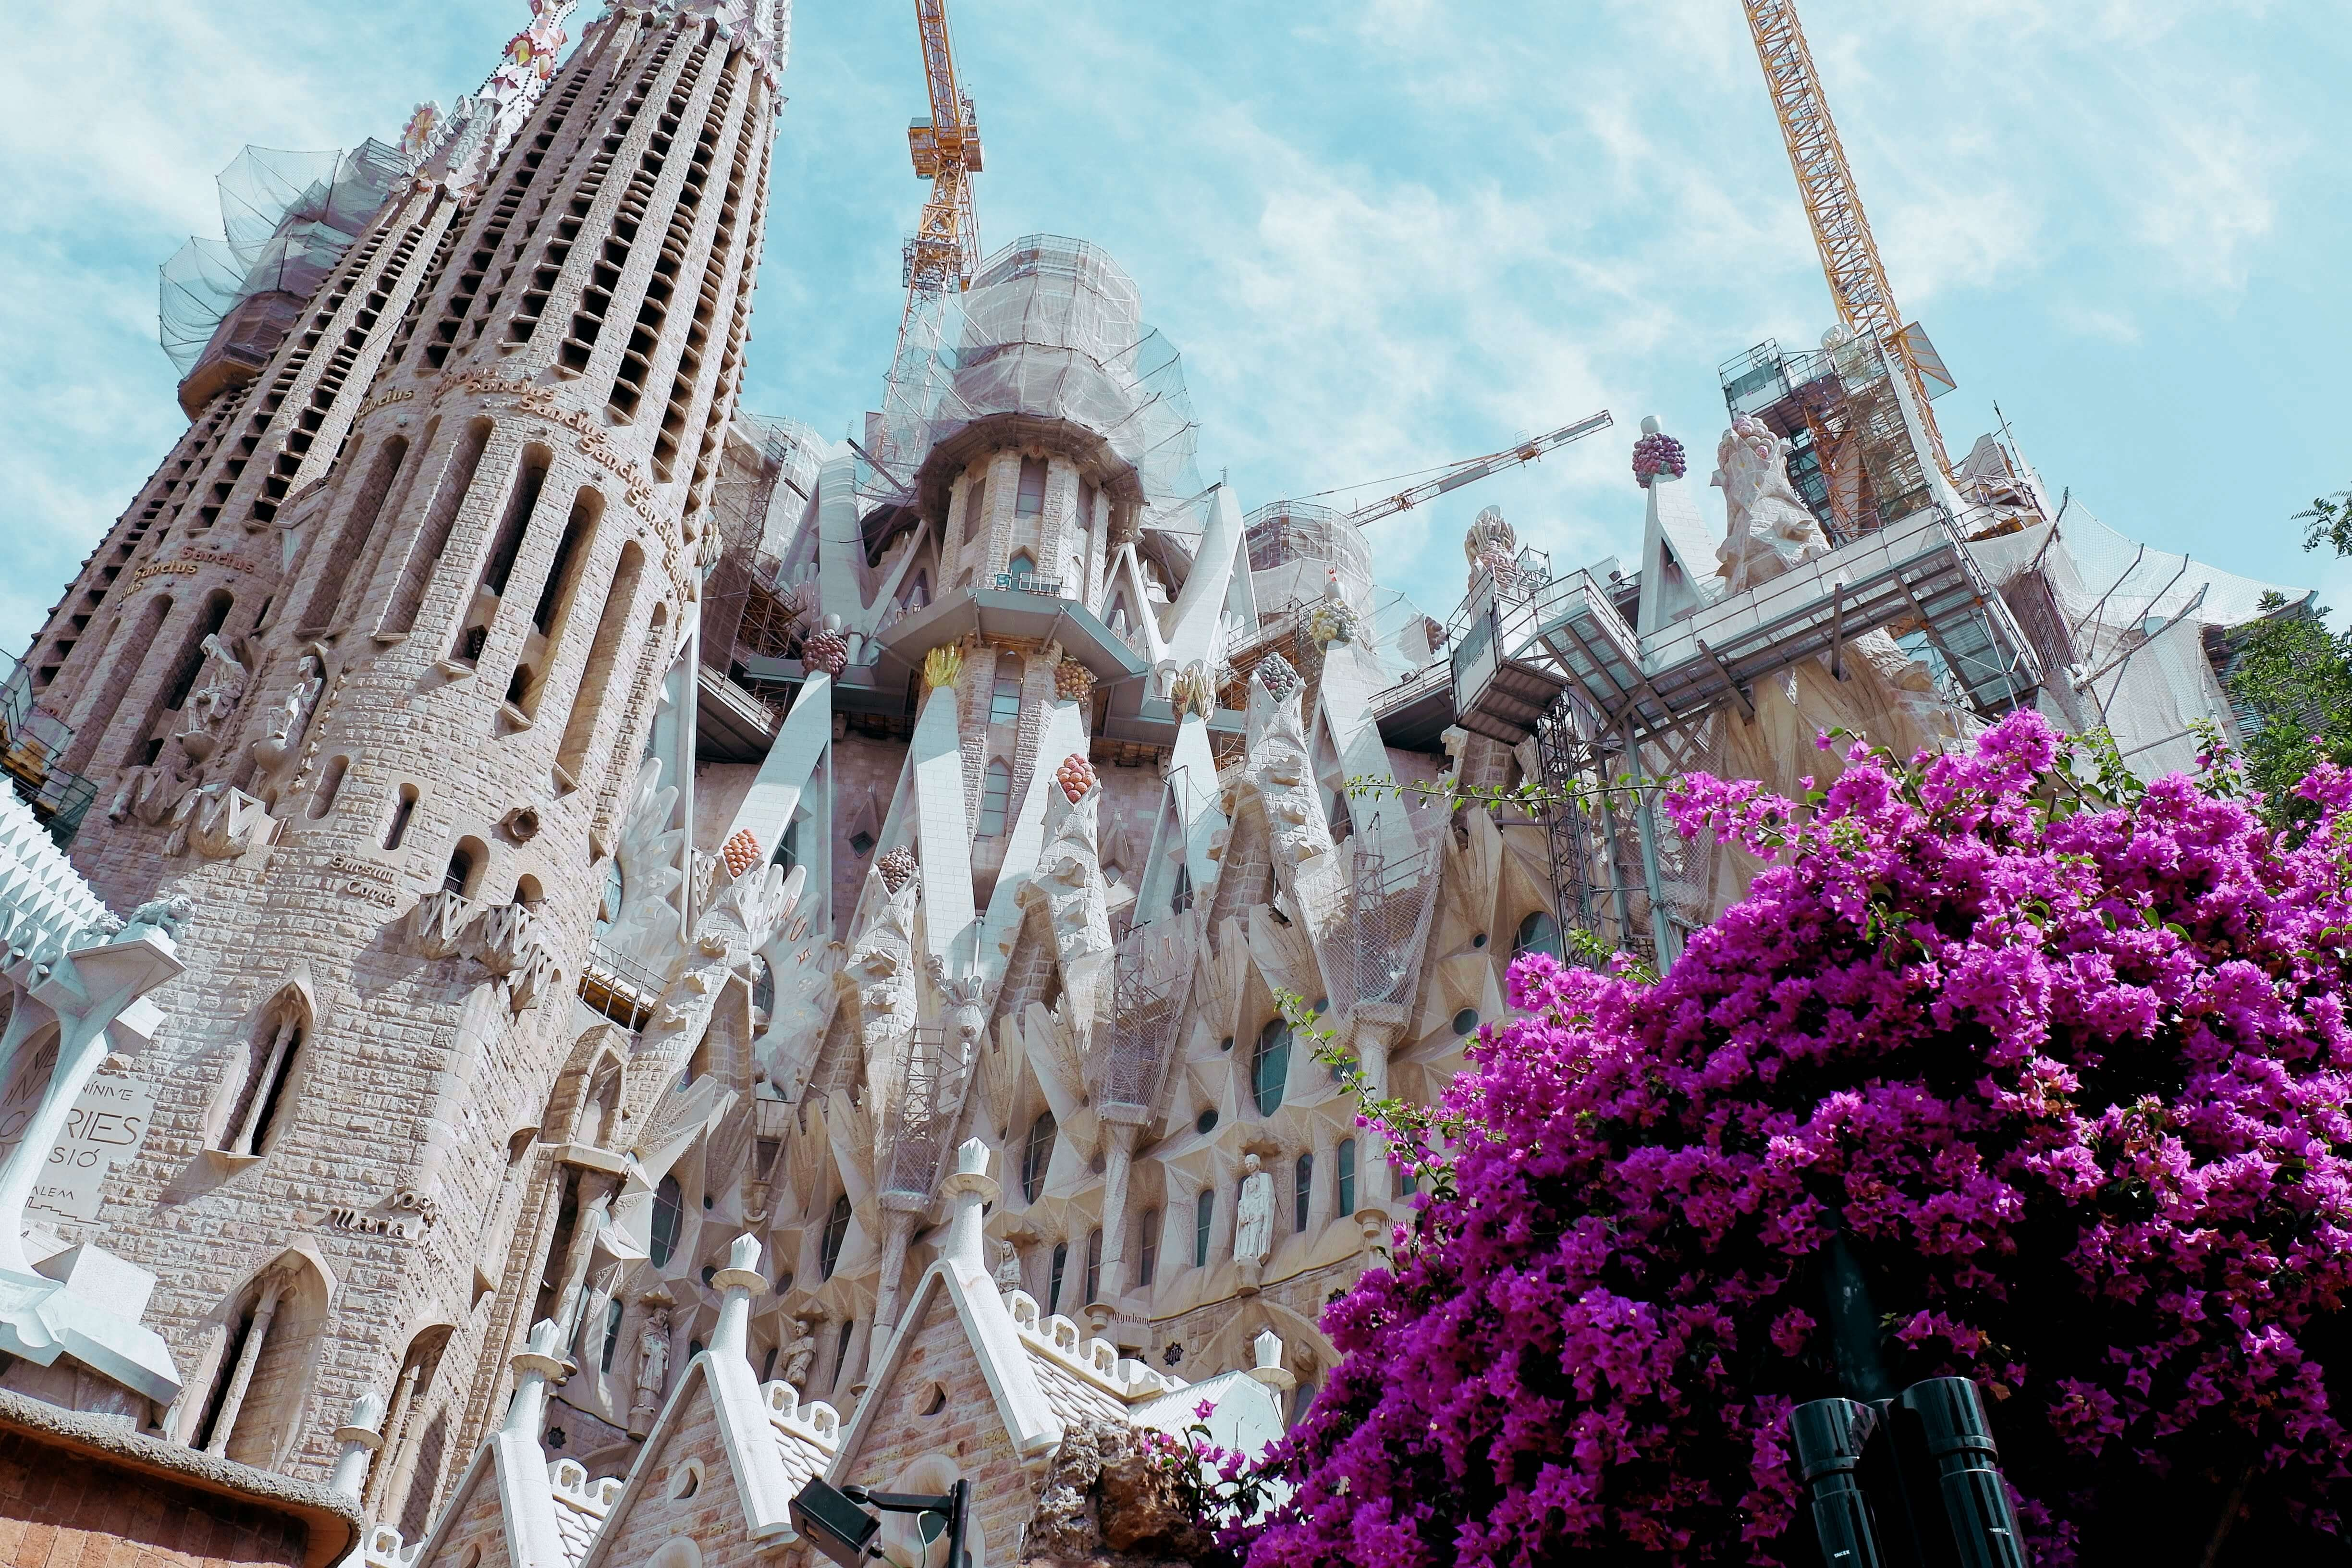 Looking up at the Sagrada Familia with purple flowers in the corner